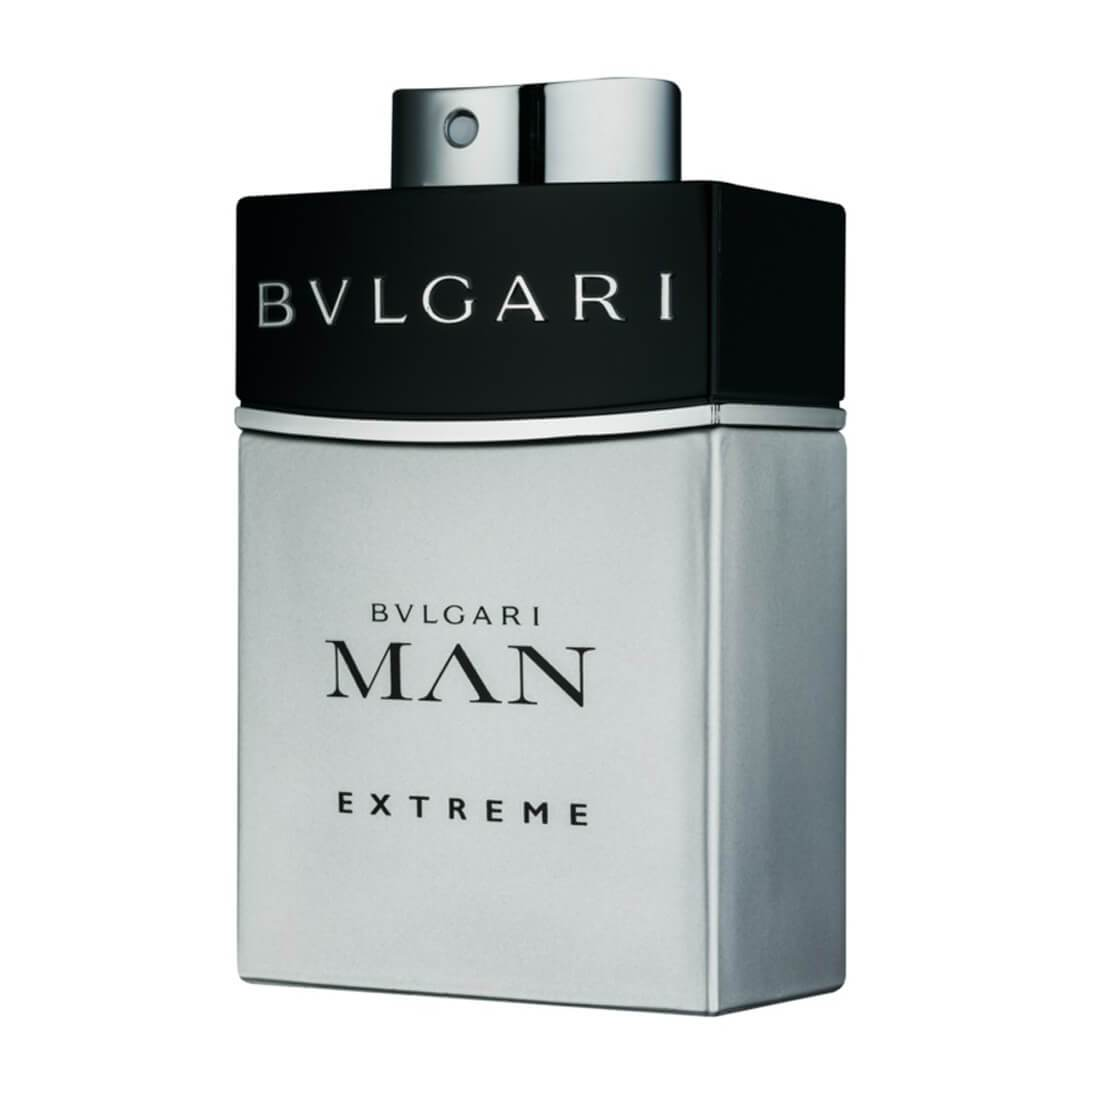 Bvlgari Man Extreme EDT Perfume For Men - 100ml